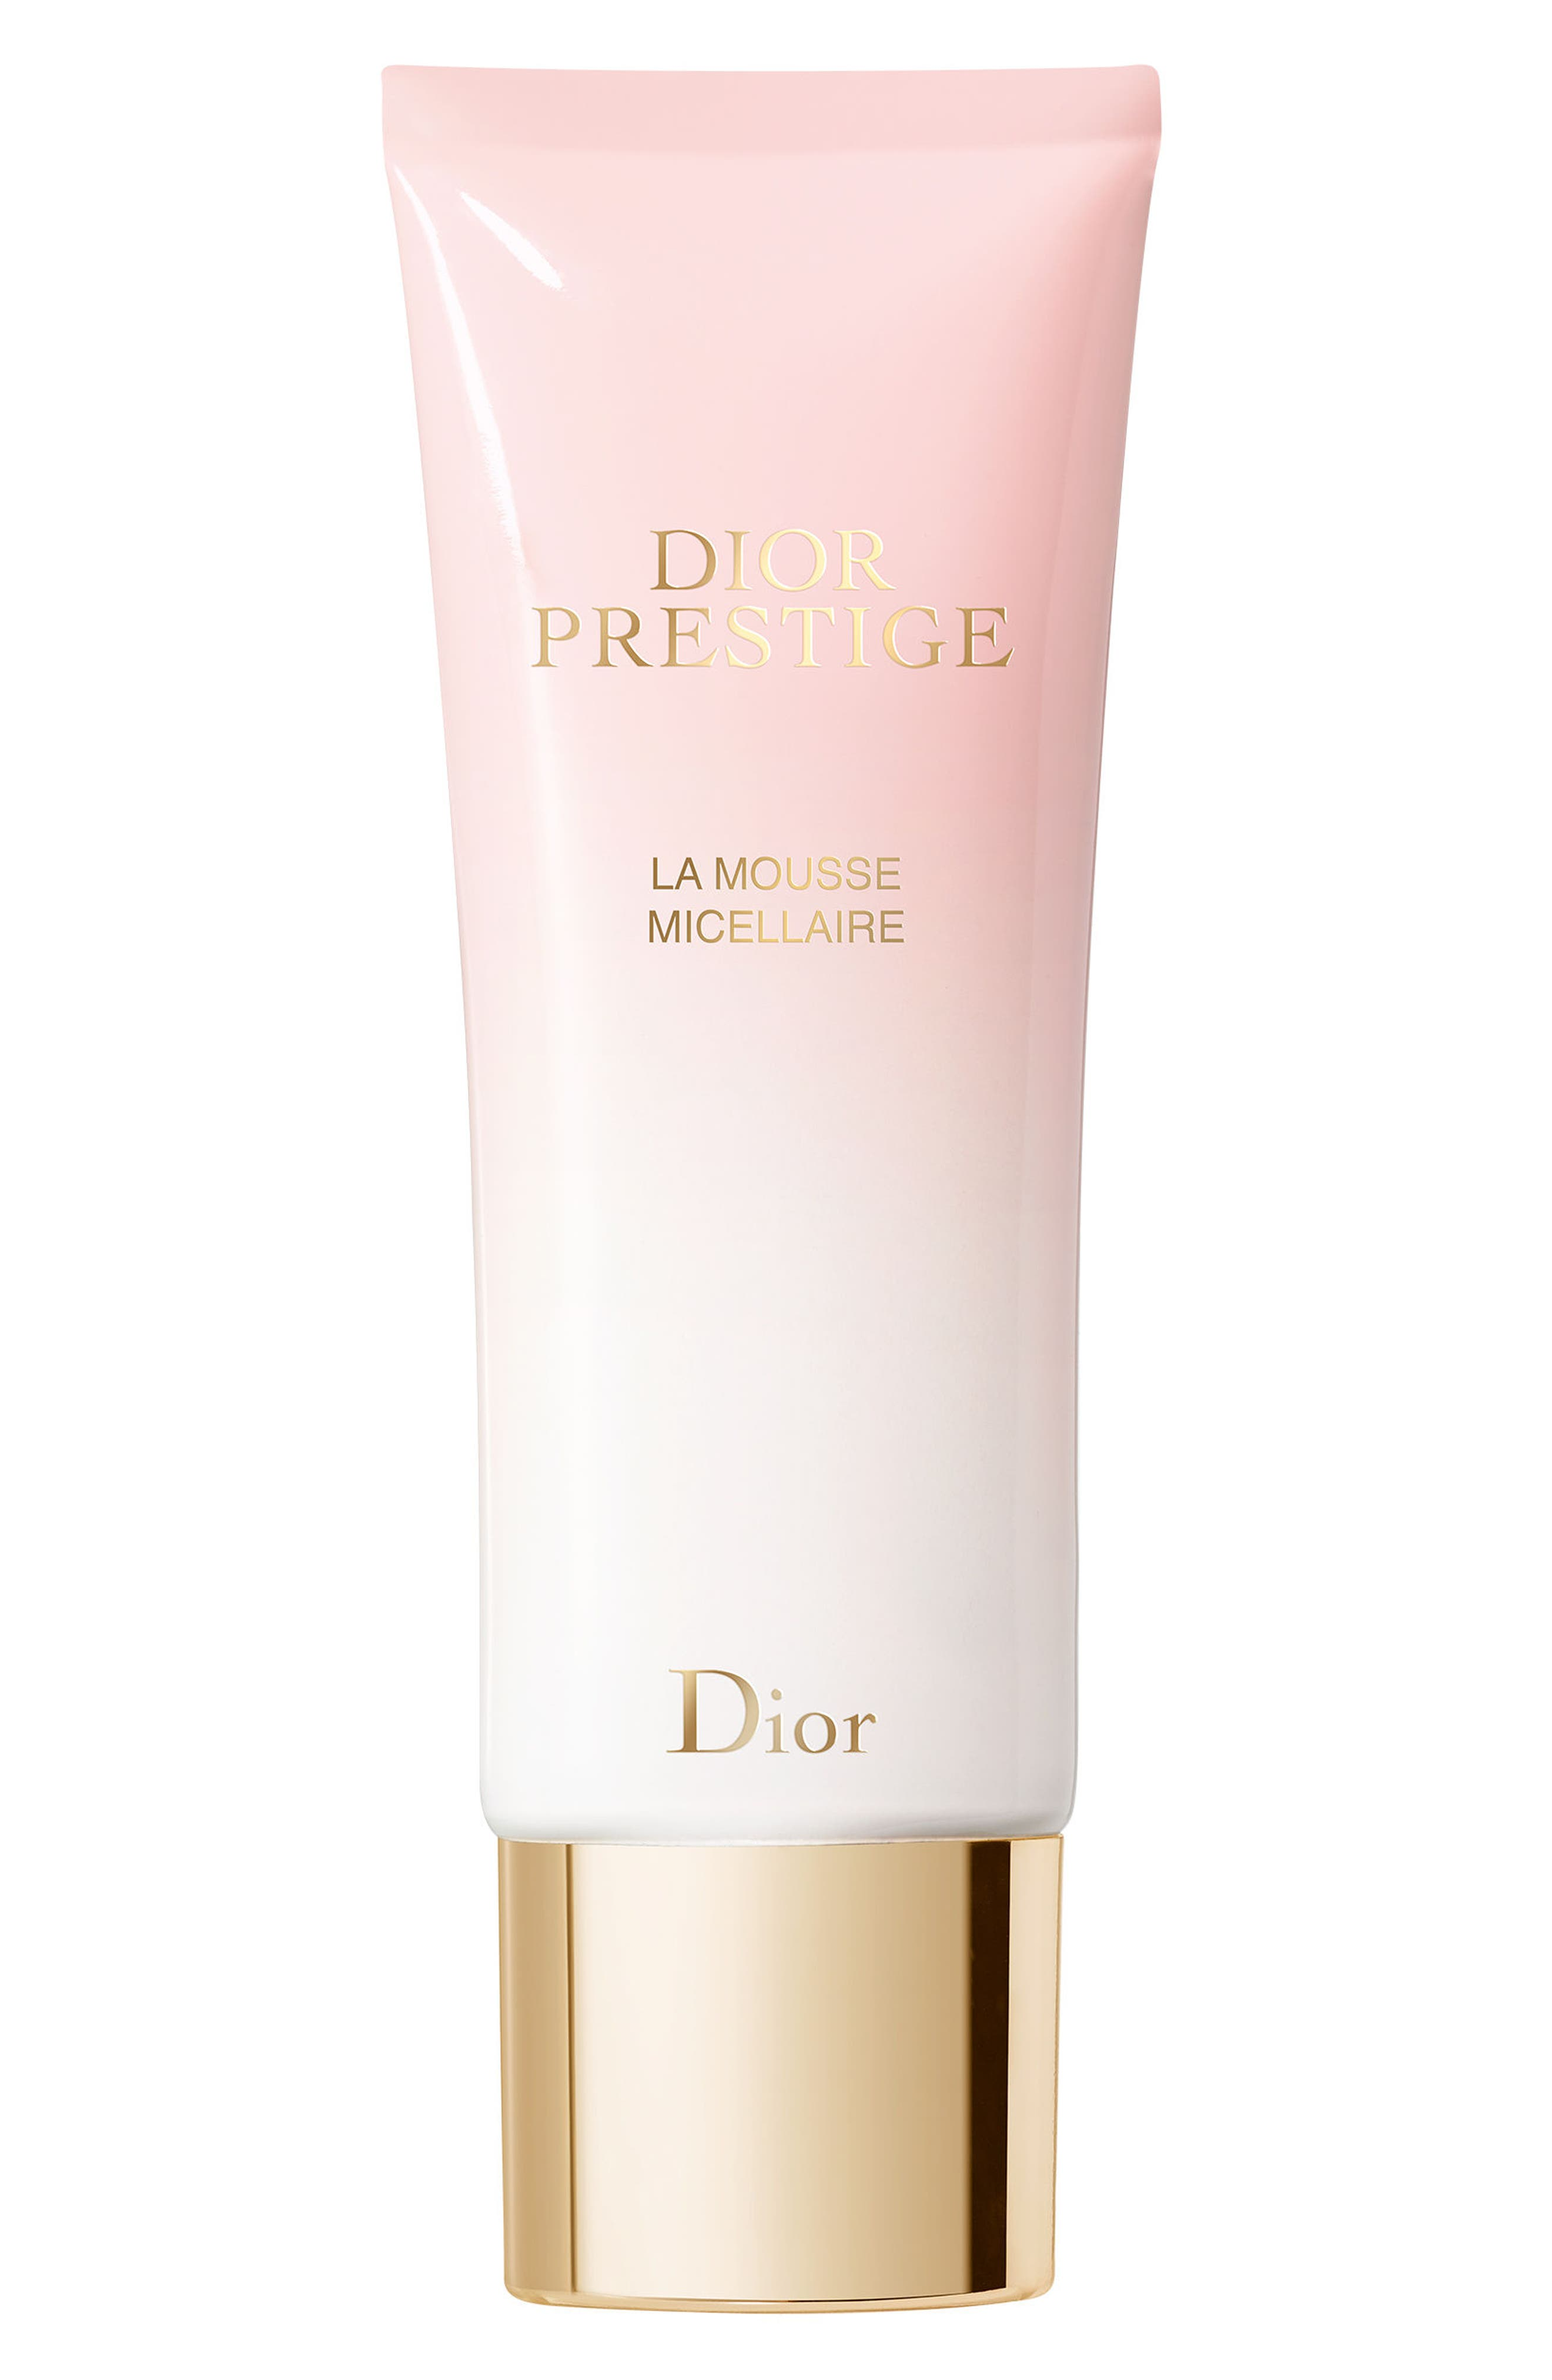 Dior La Mousse Micellaire Rose Whipped Mousse